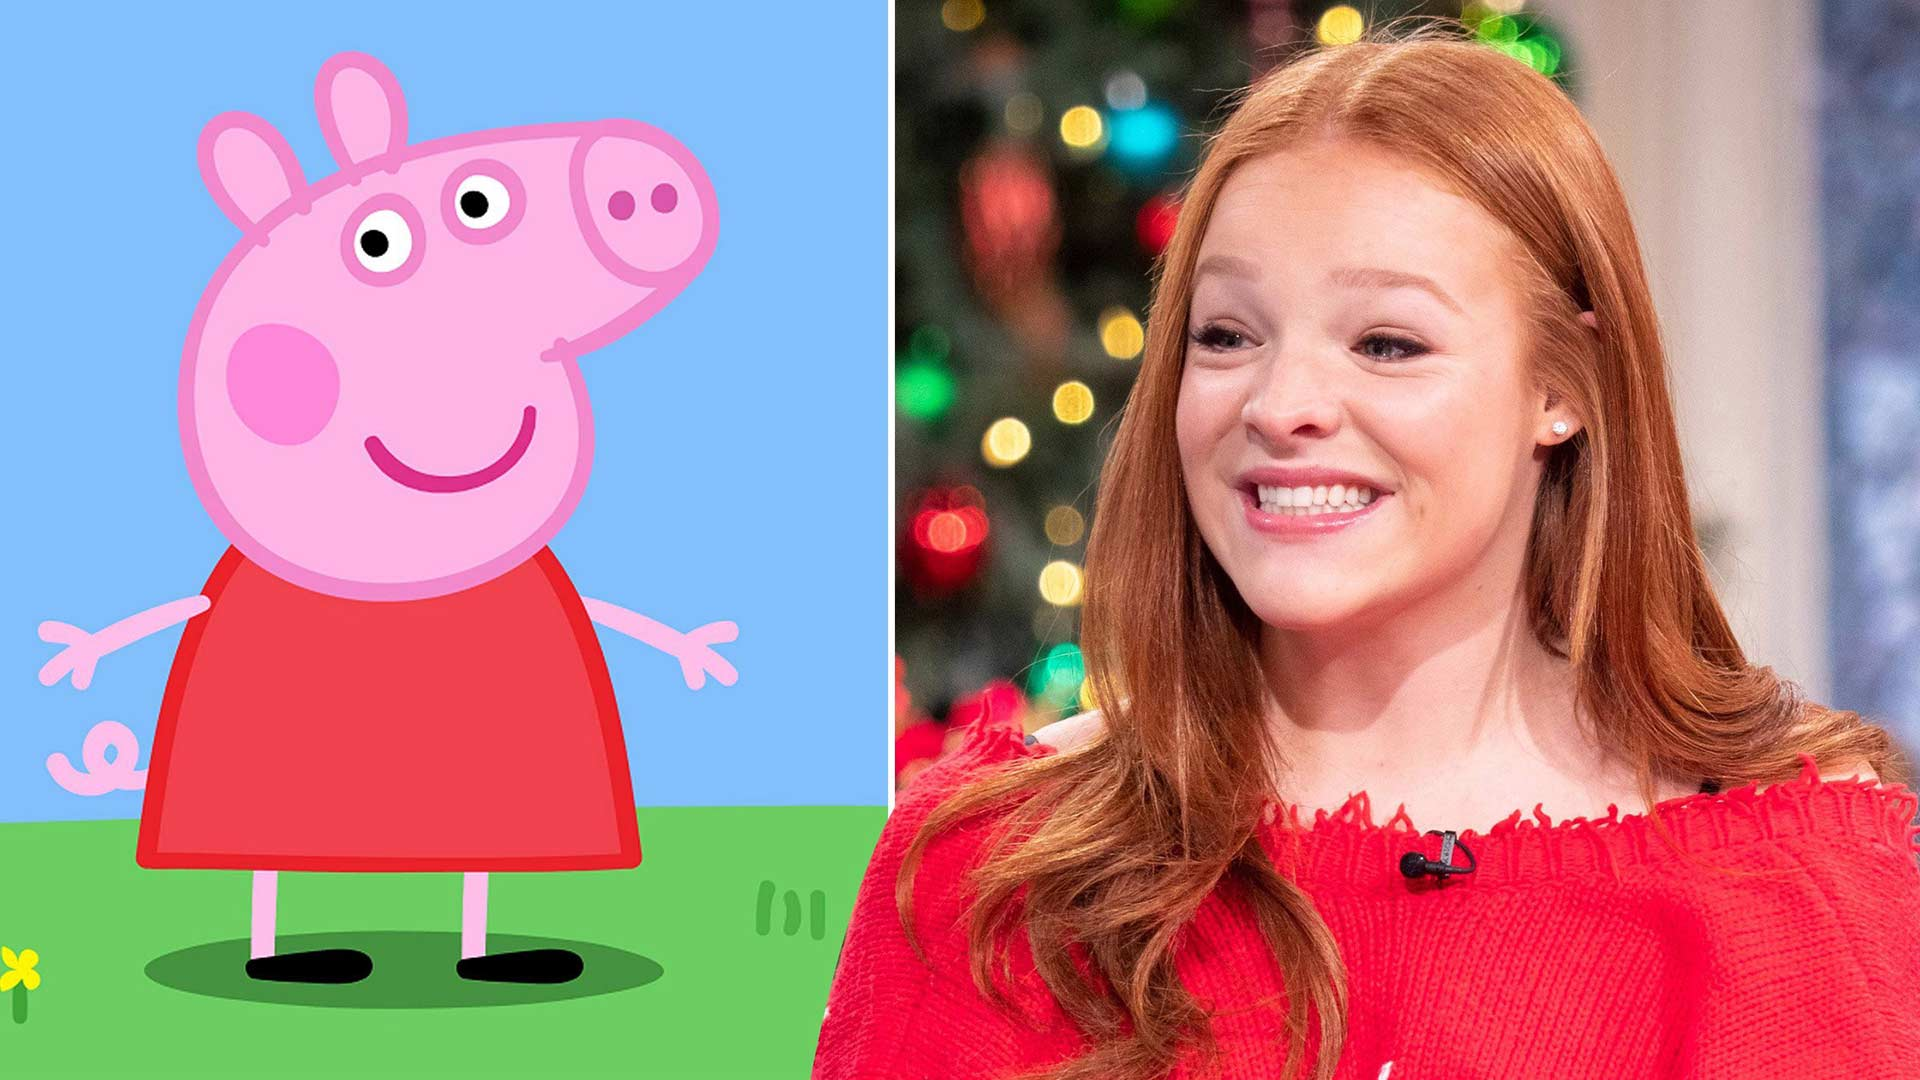 Peppa Has a New Voice Actress